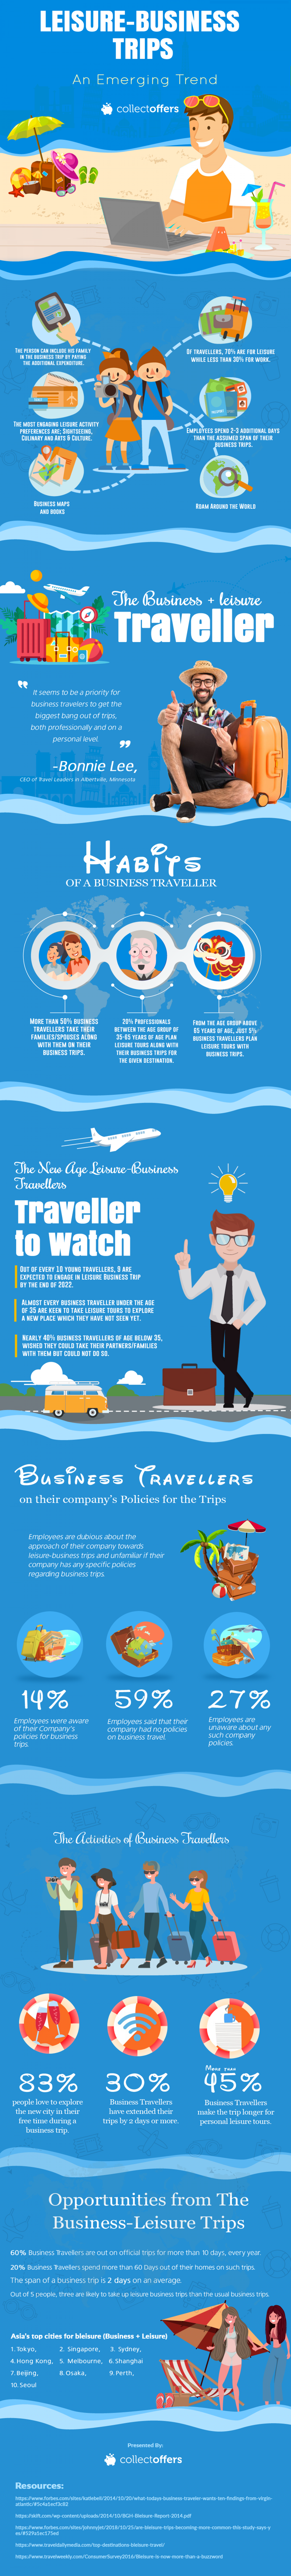 Leisure-Business Trips   An Emerging Travel Trend! Infographic